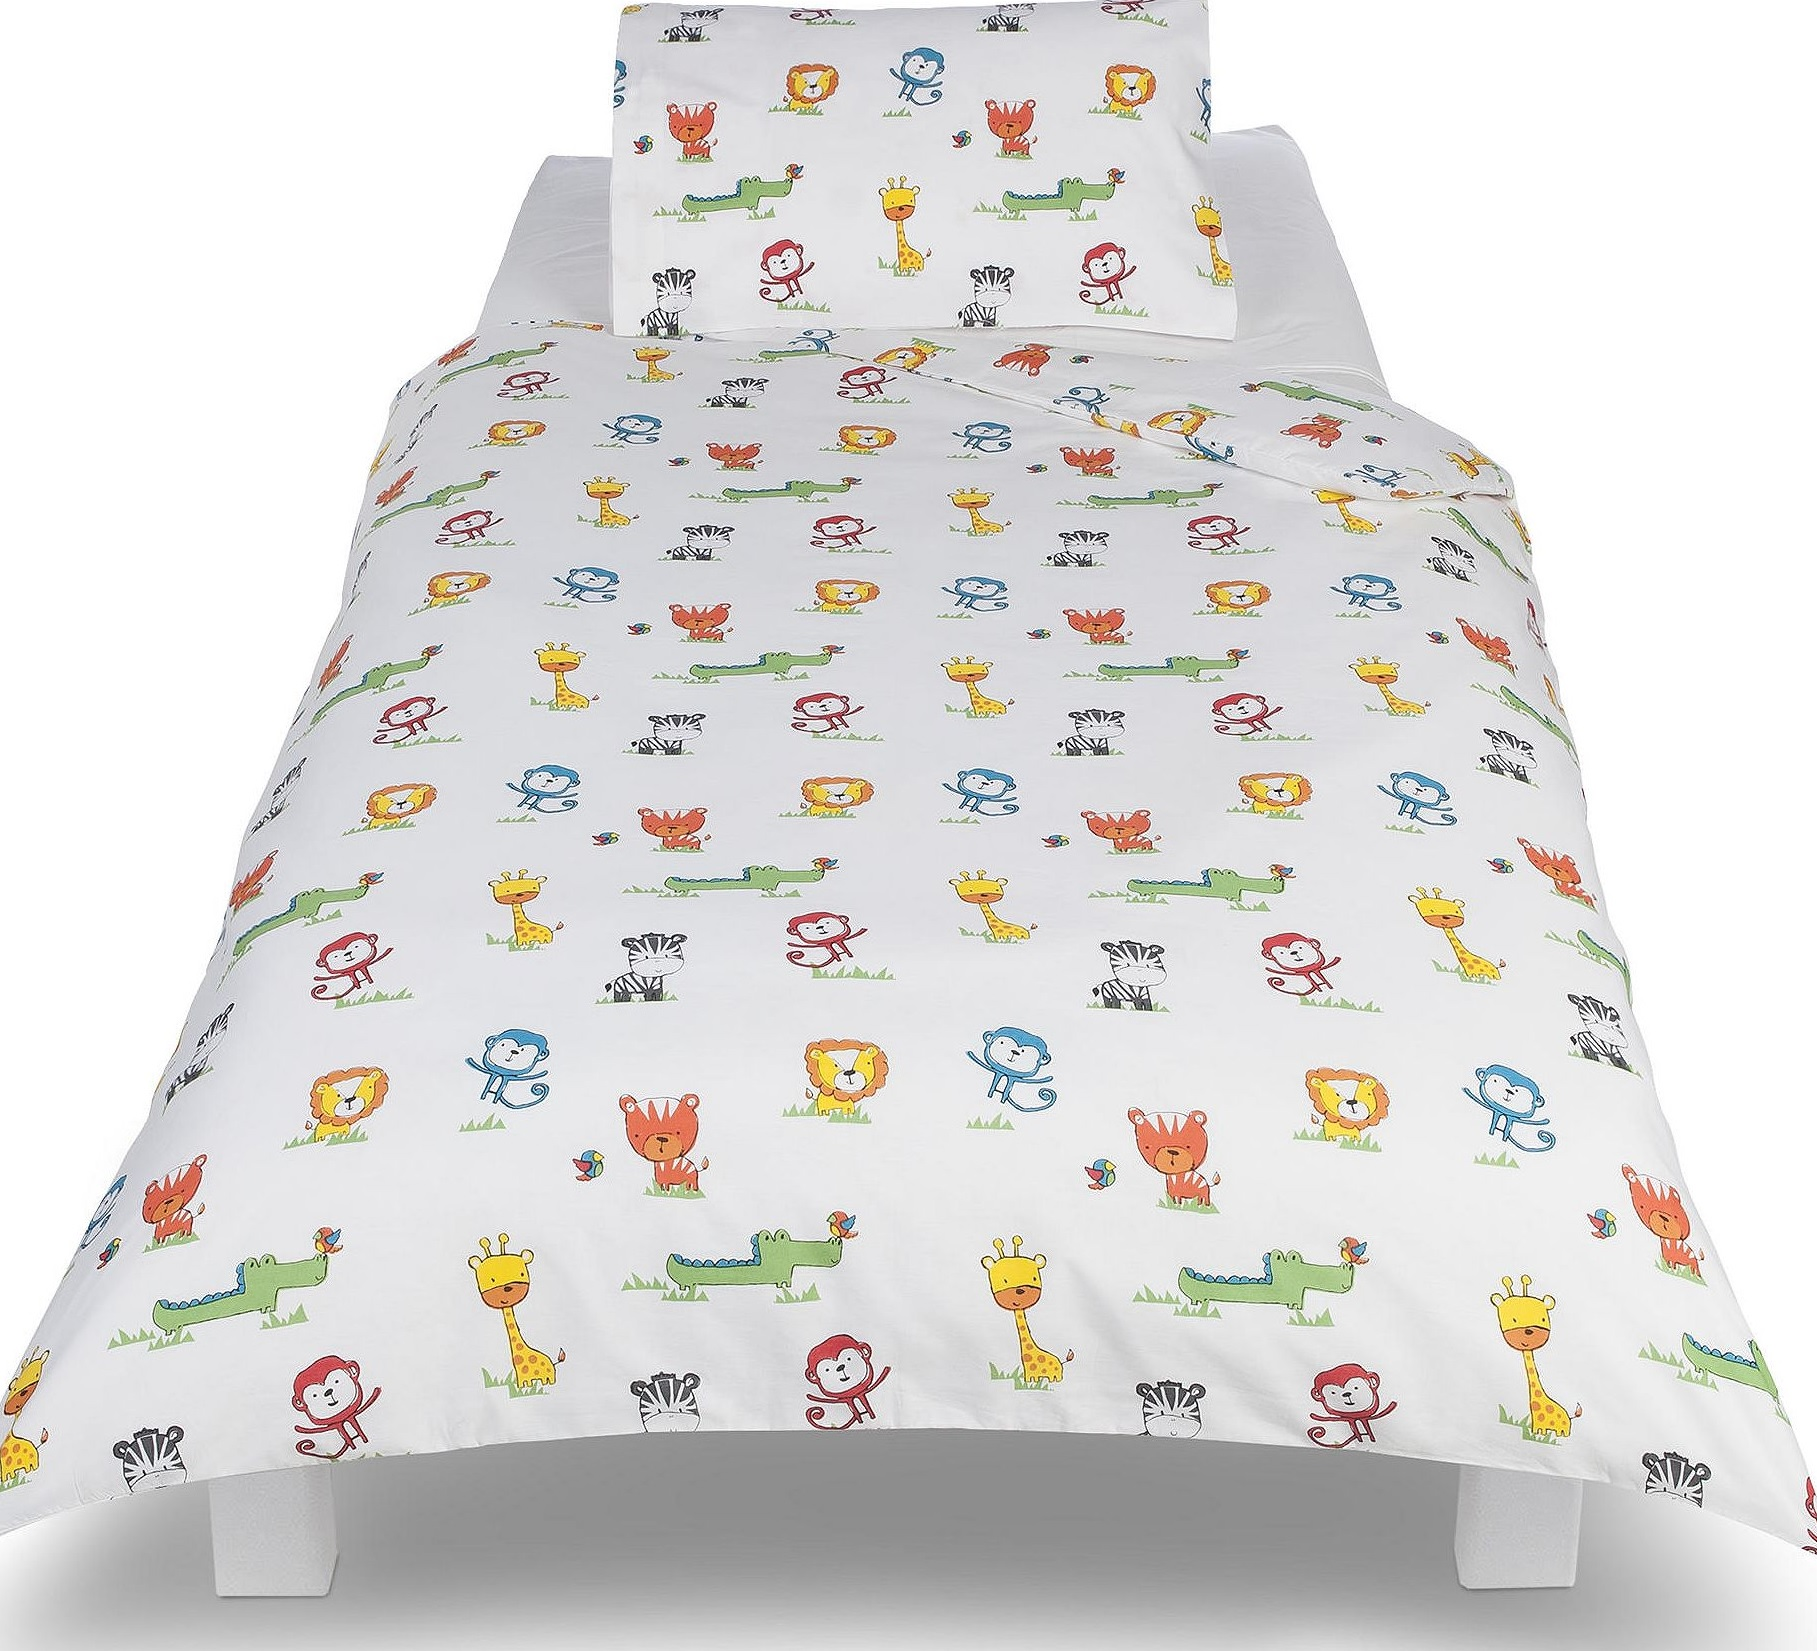 new tesco toddler cot bed duvet cover 1 pillowcase 2. Black Bedroom Furniture Sets. Home Design Ideas